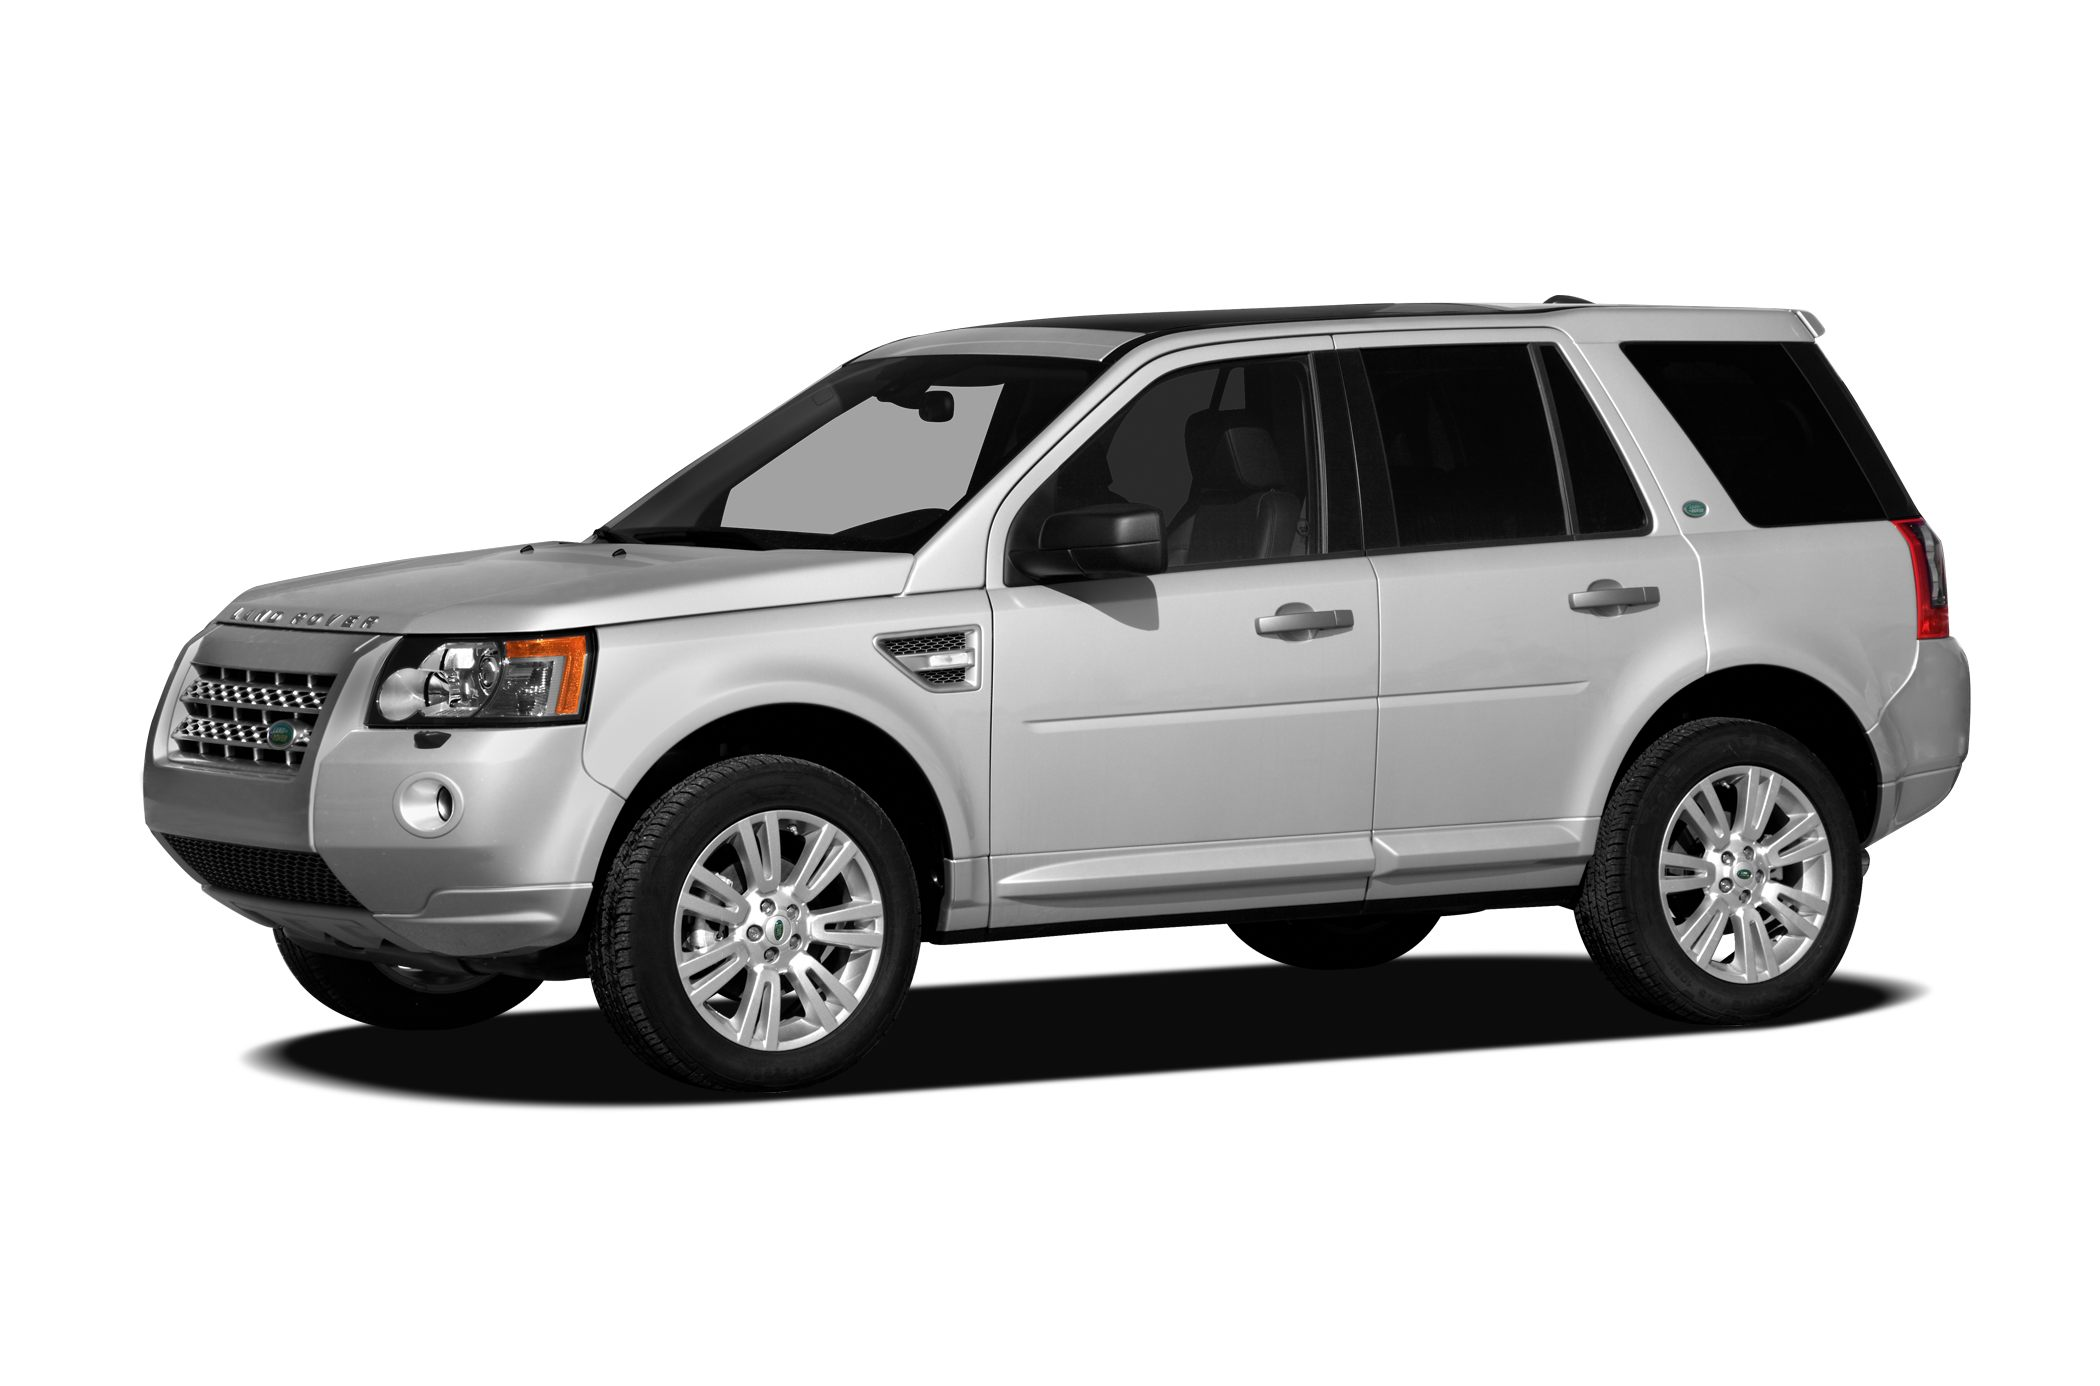 2009 Land Rover LR2 HSE  COME SEE THE DIFFERENCE AT TAJ AUTO MALL WE SELL OUR VEHICLES AT